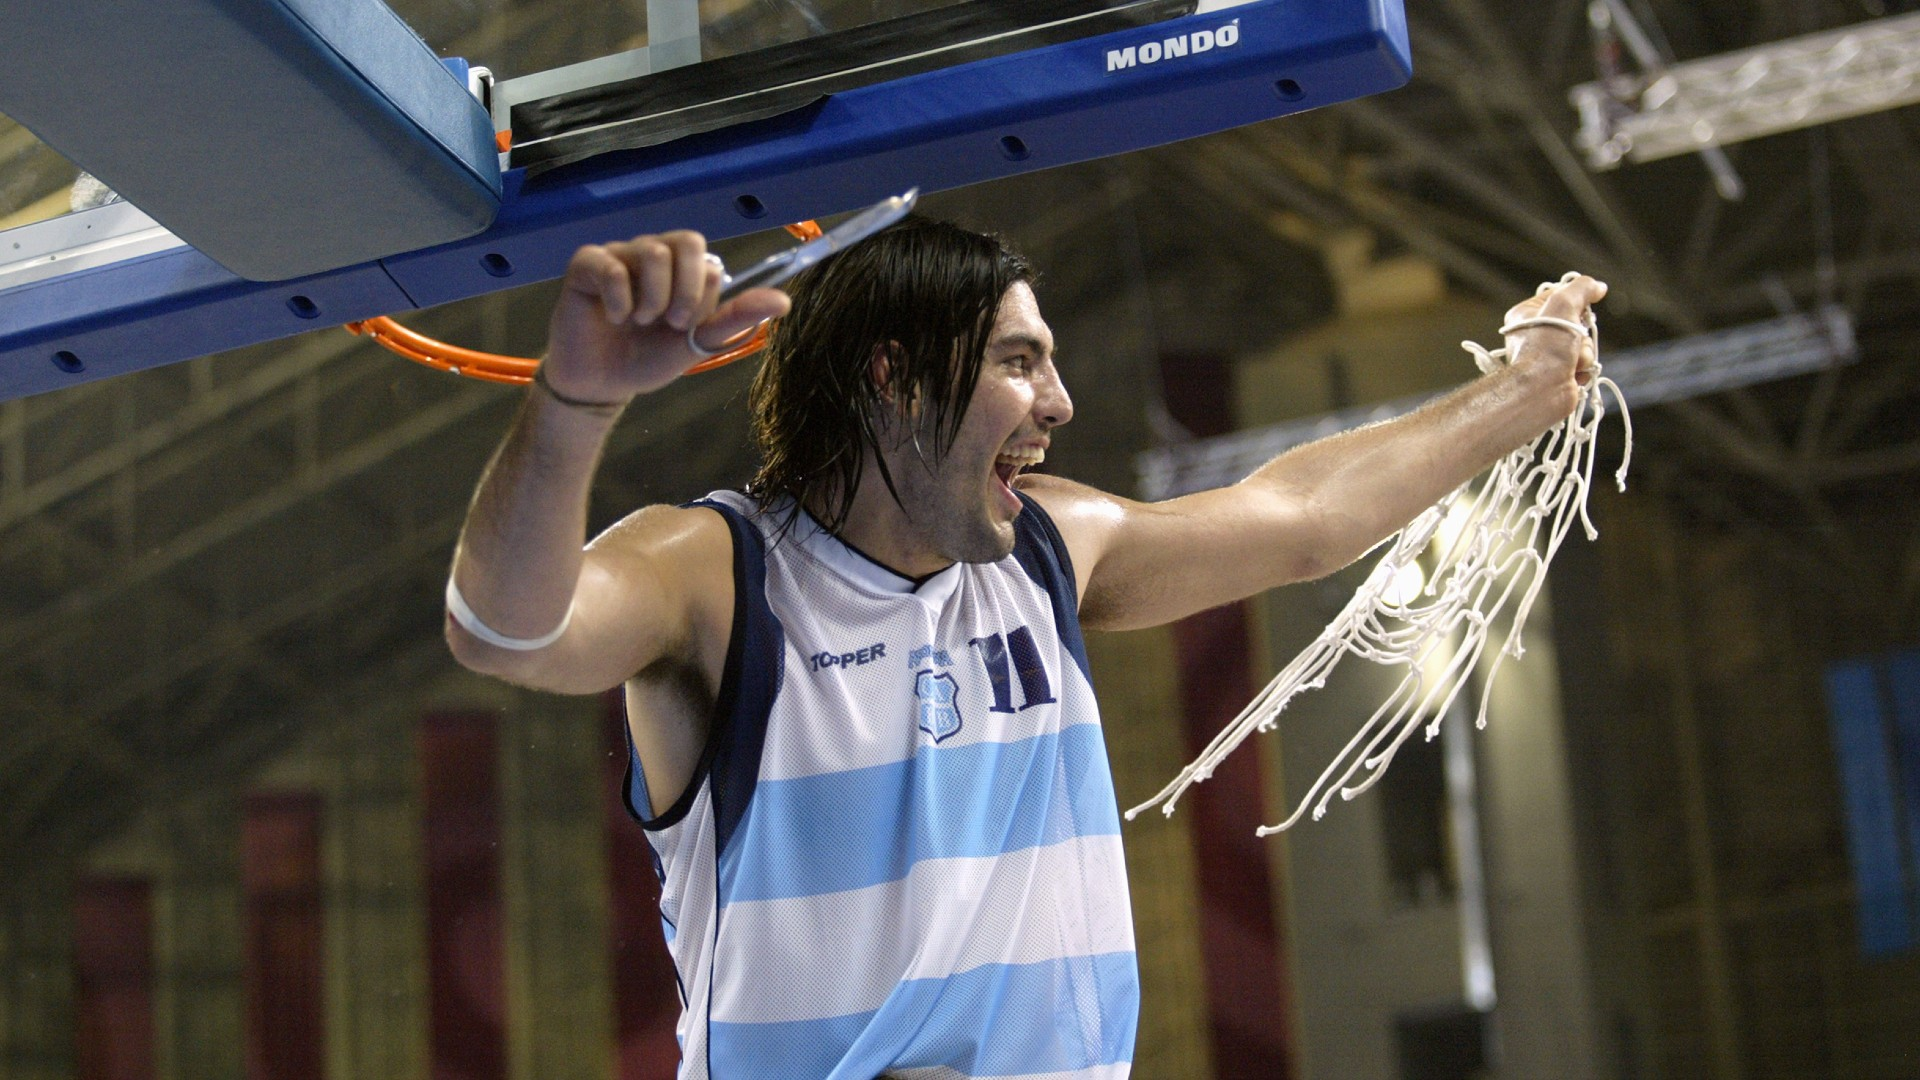 1626379379 992 The Argentine basketball team at the Olympic Games records statistics